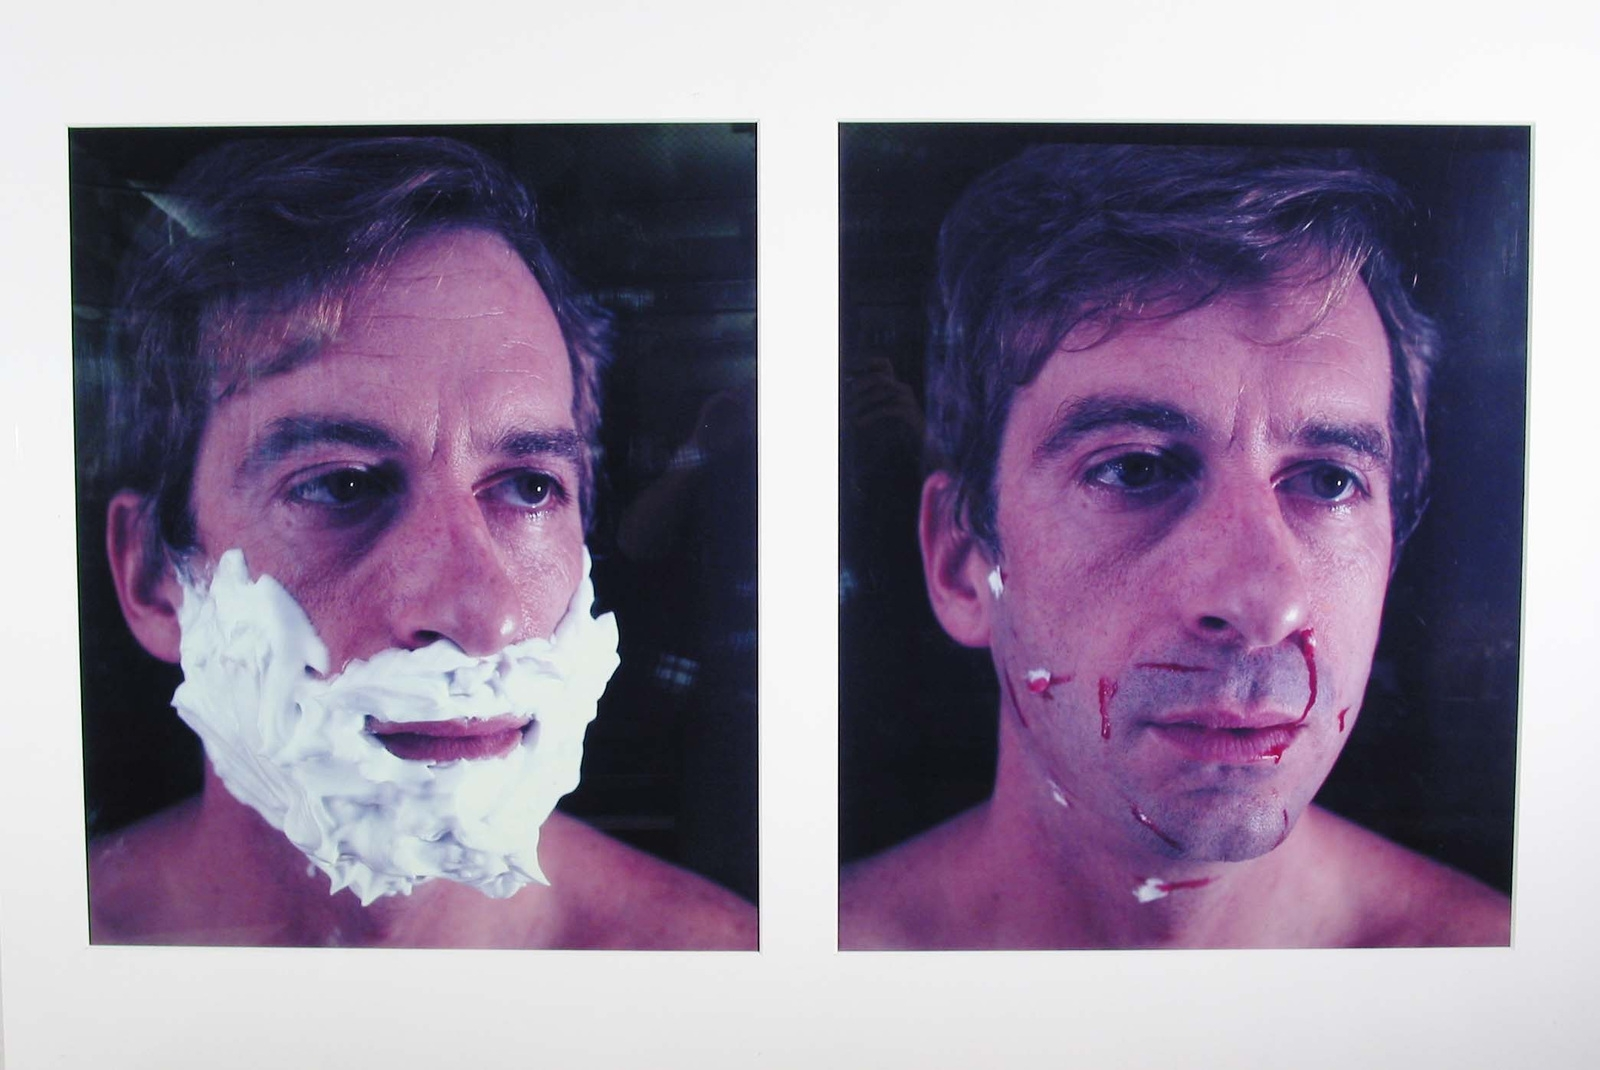 Foamy Aftershave (L-Foamy; R-Aftershave). 1982. image